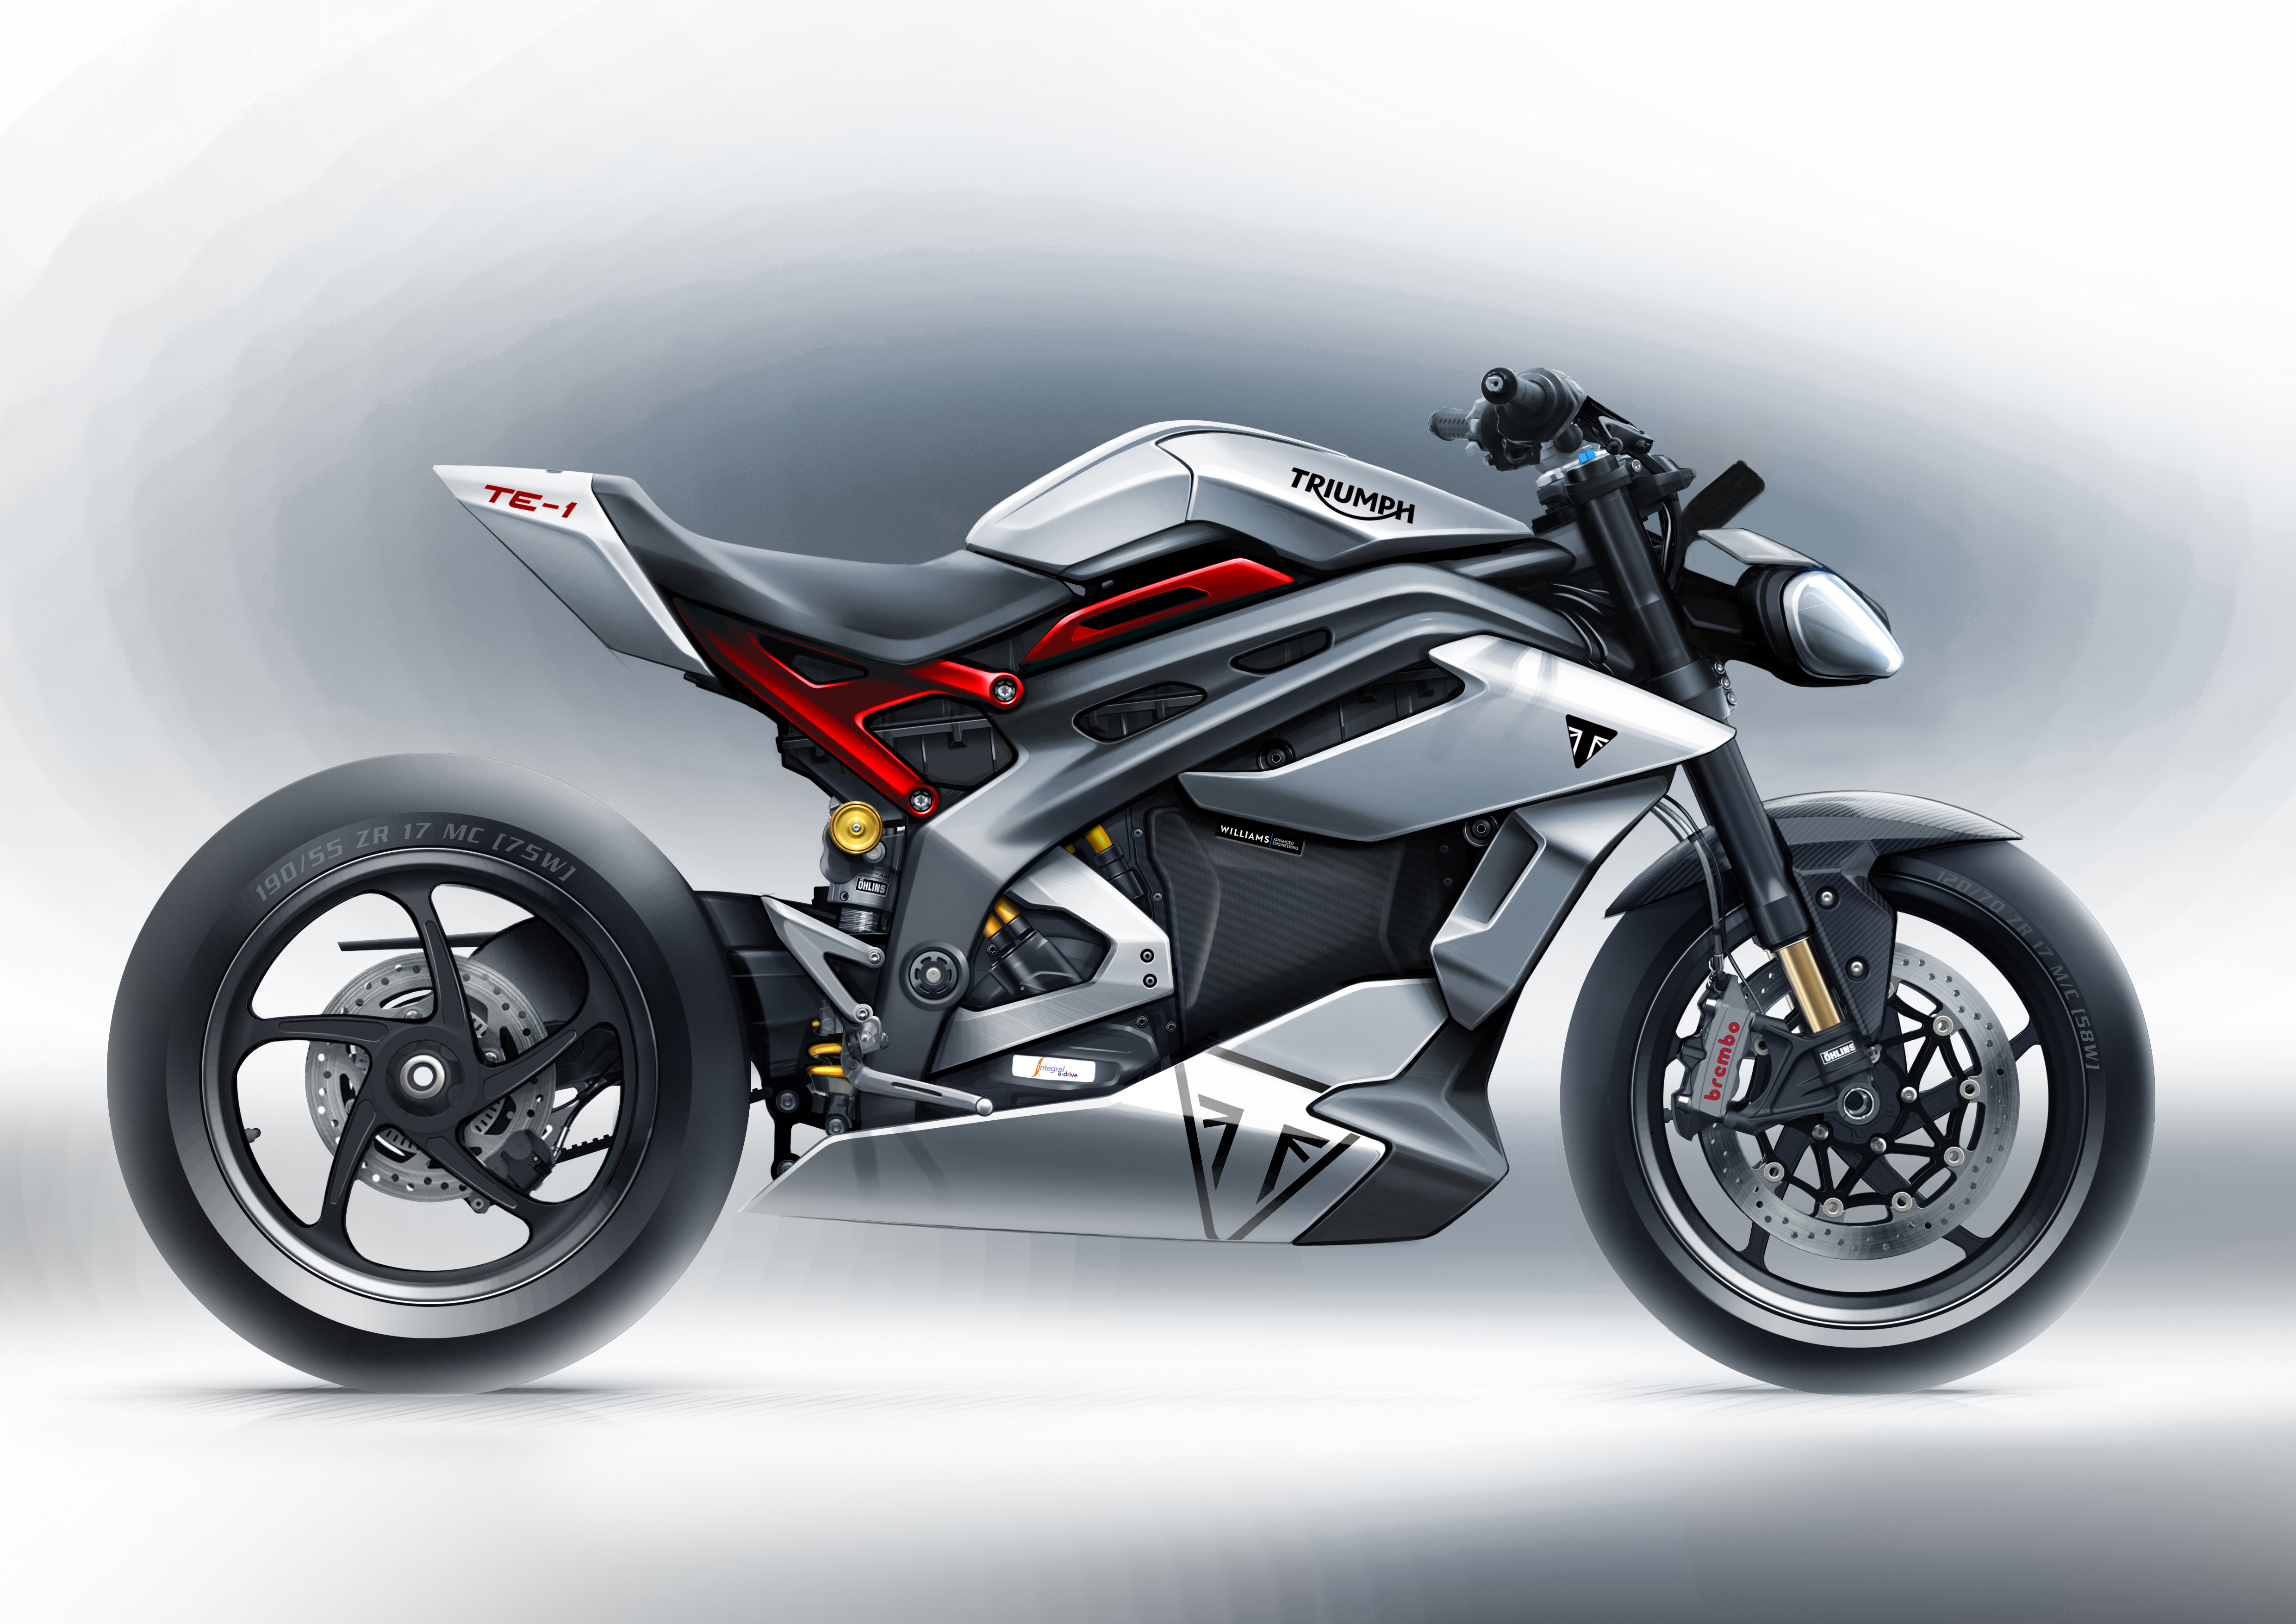 Project Triumph TE-1 has released the first styling sketches of the final prototype for its electric motorcycle